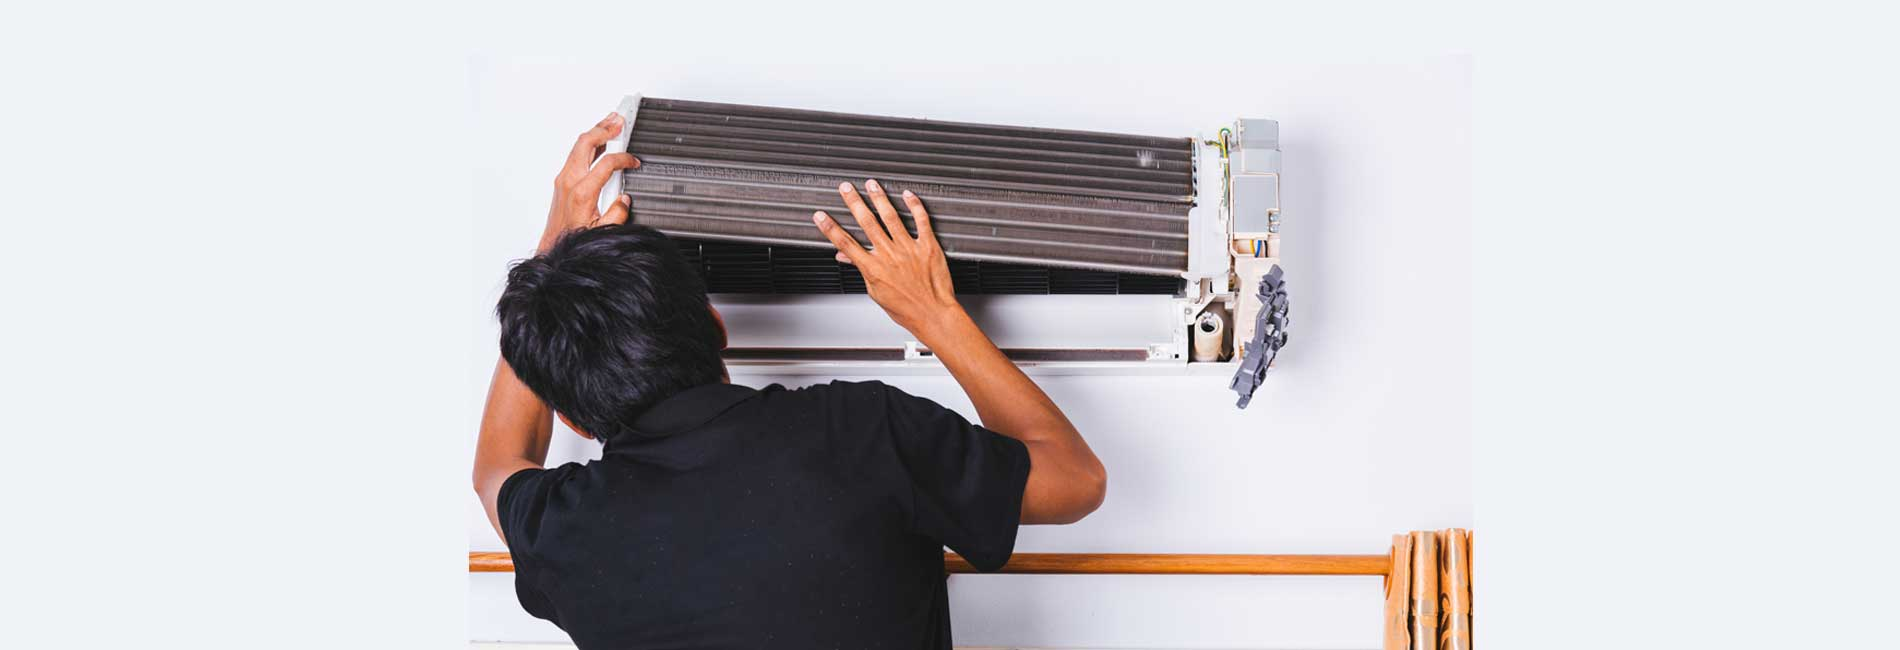 Bluestar AC Installation in Thiruneermalai